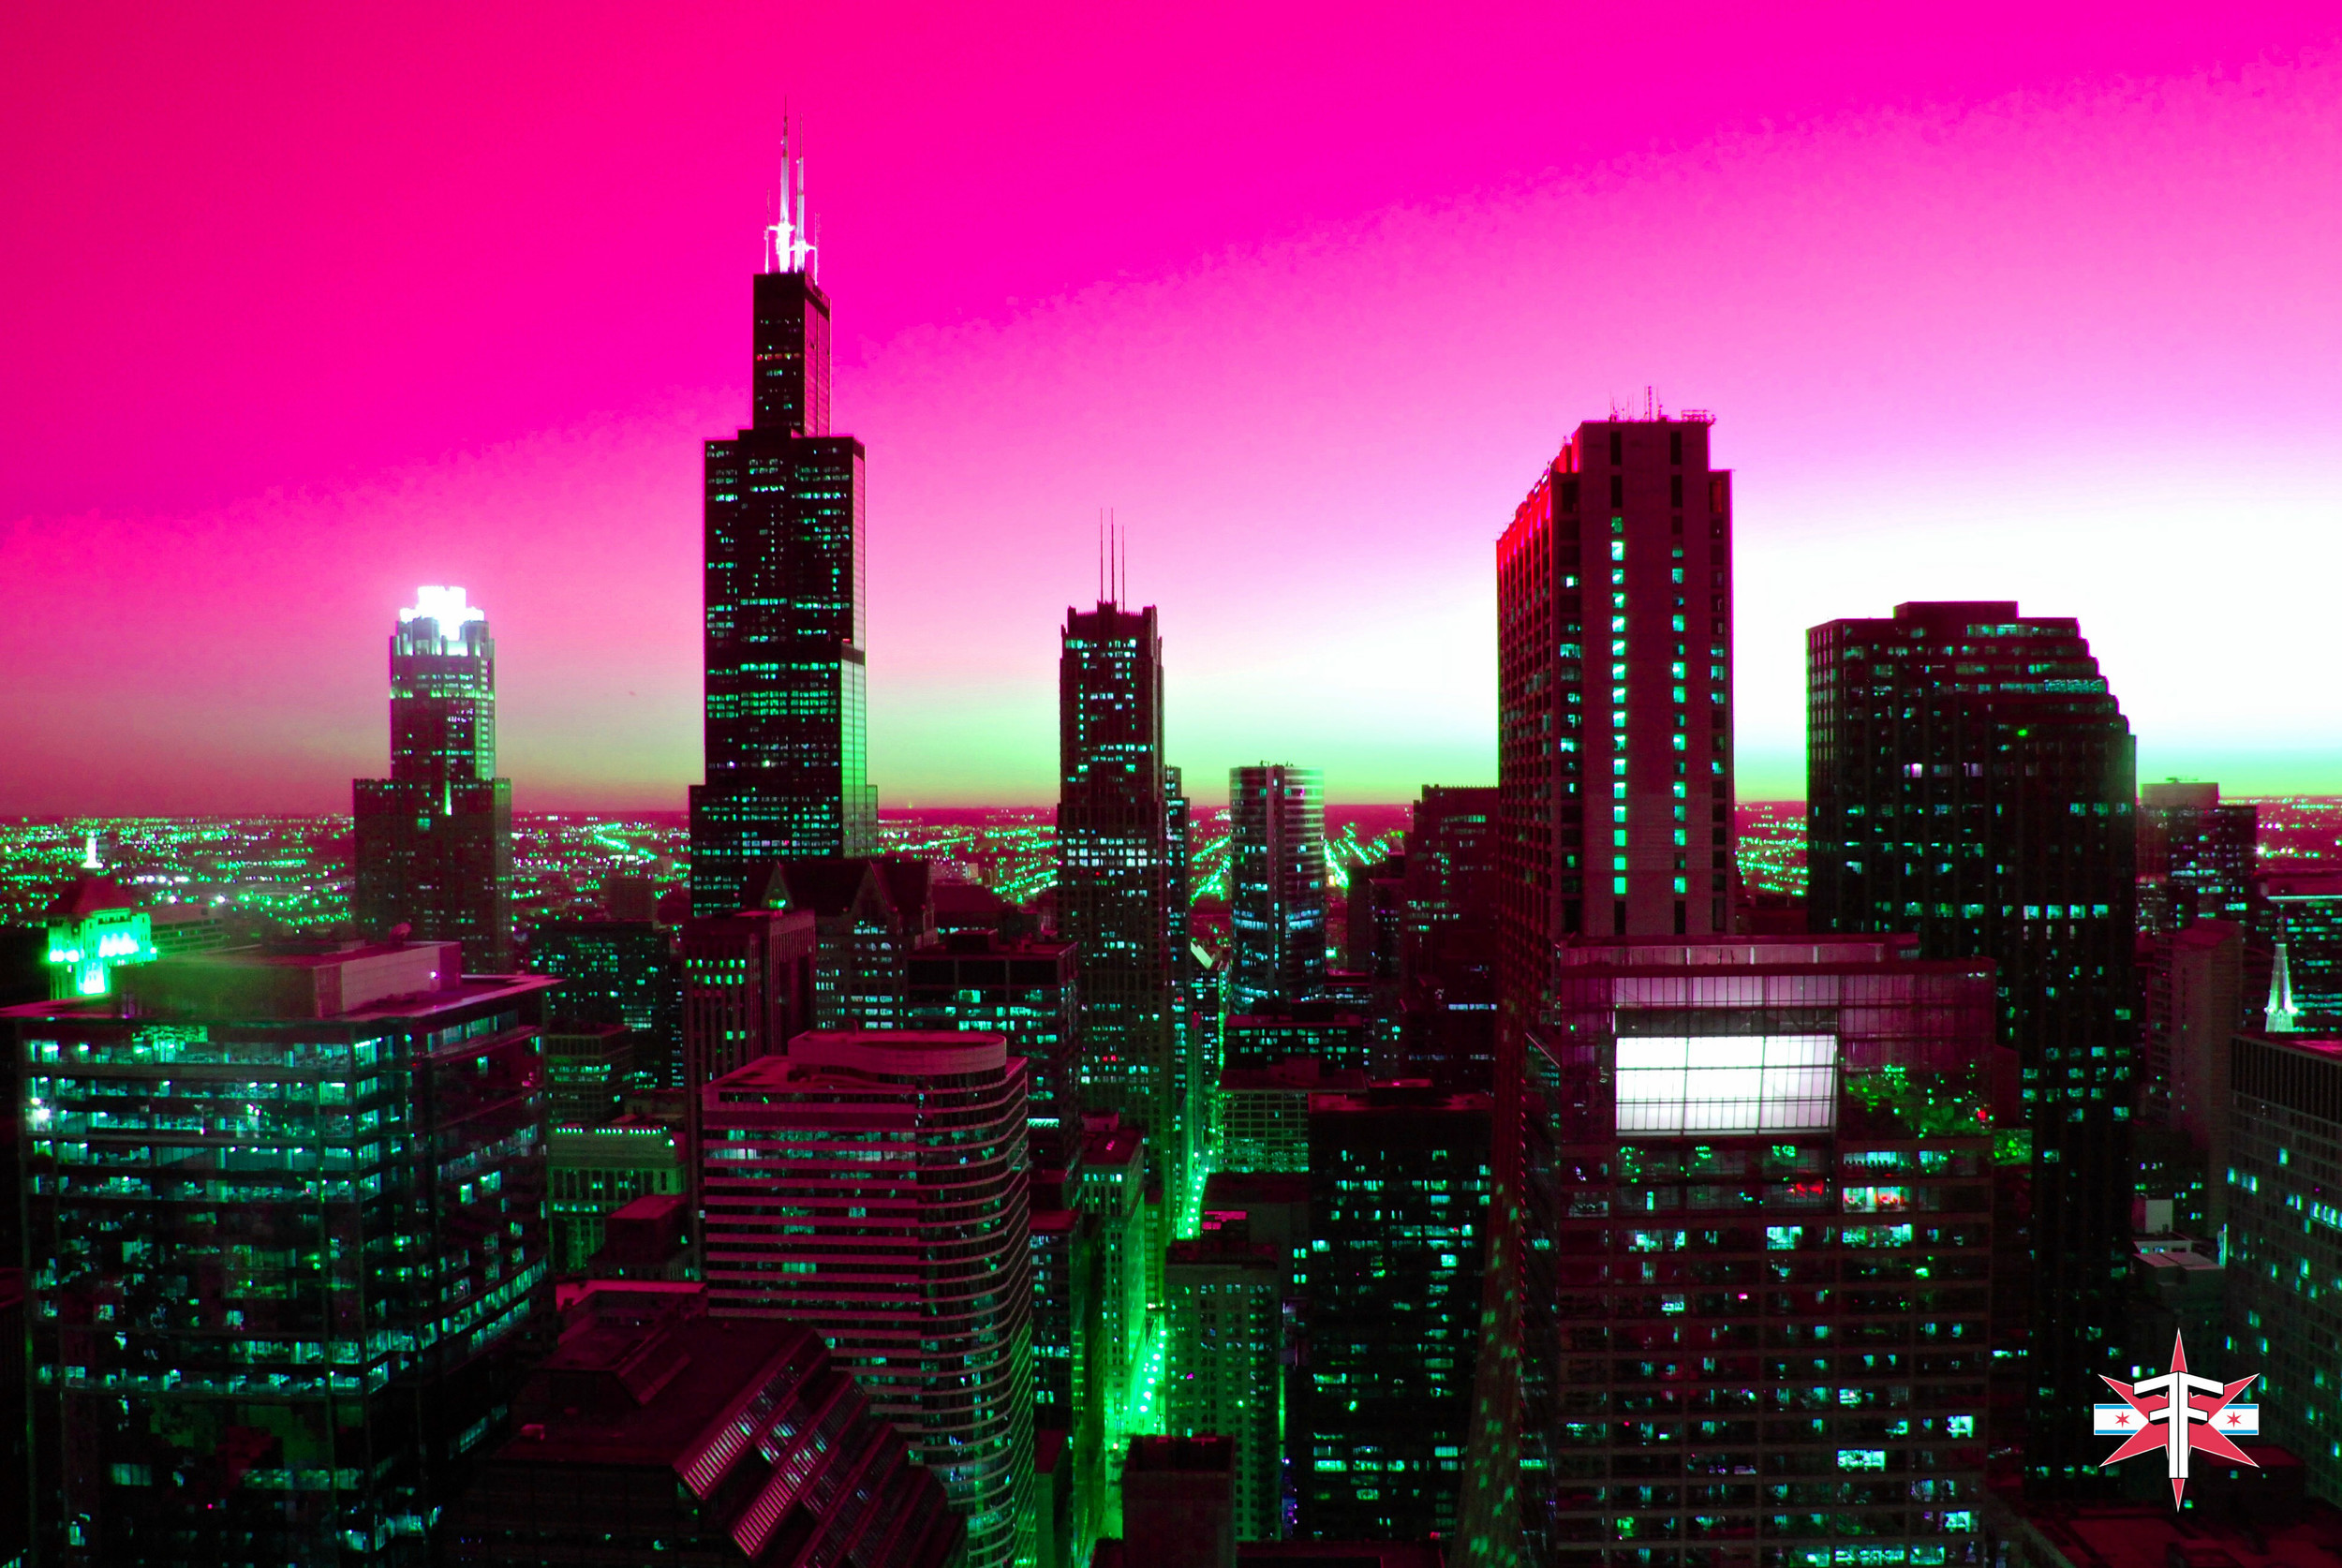 chicago art abstract eric formato photography color travel cityscape architecture saturated citycapes bright vibrant artistic-7.jpg